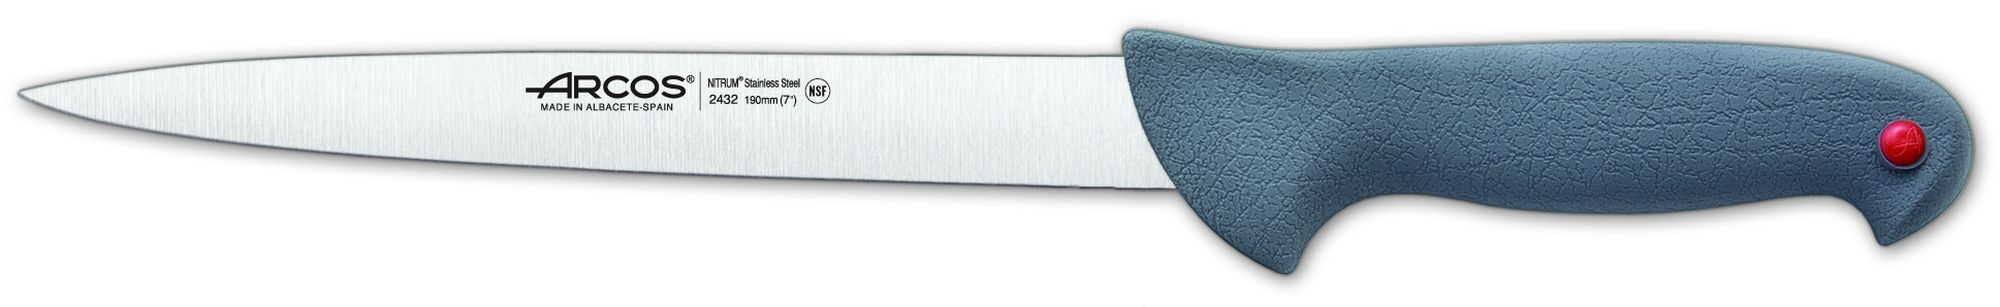 Cuchillo Fileteador - Semiflexible Arcos ref.: 243200